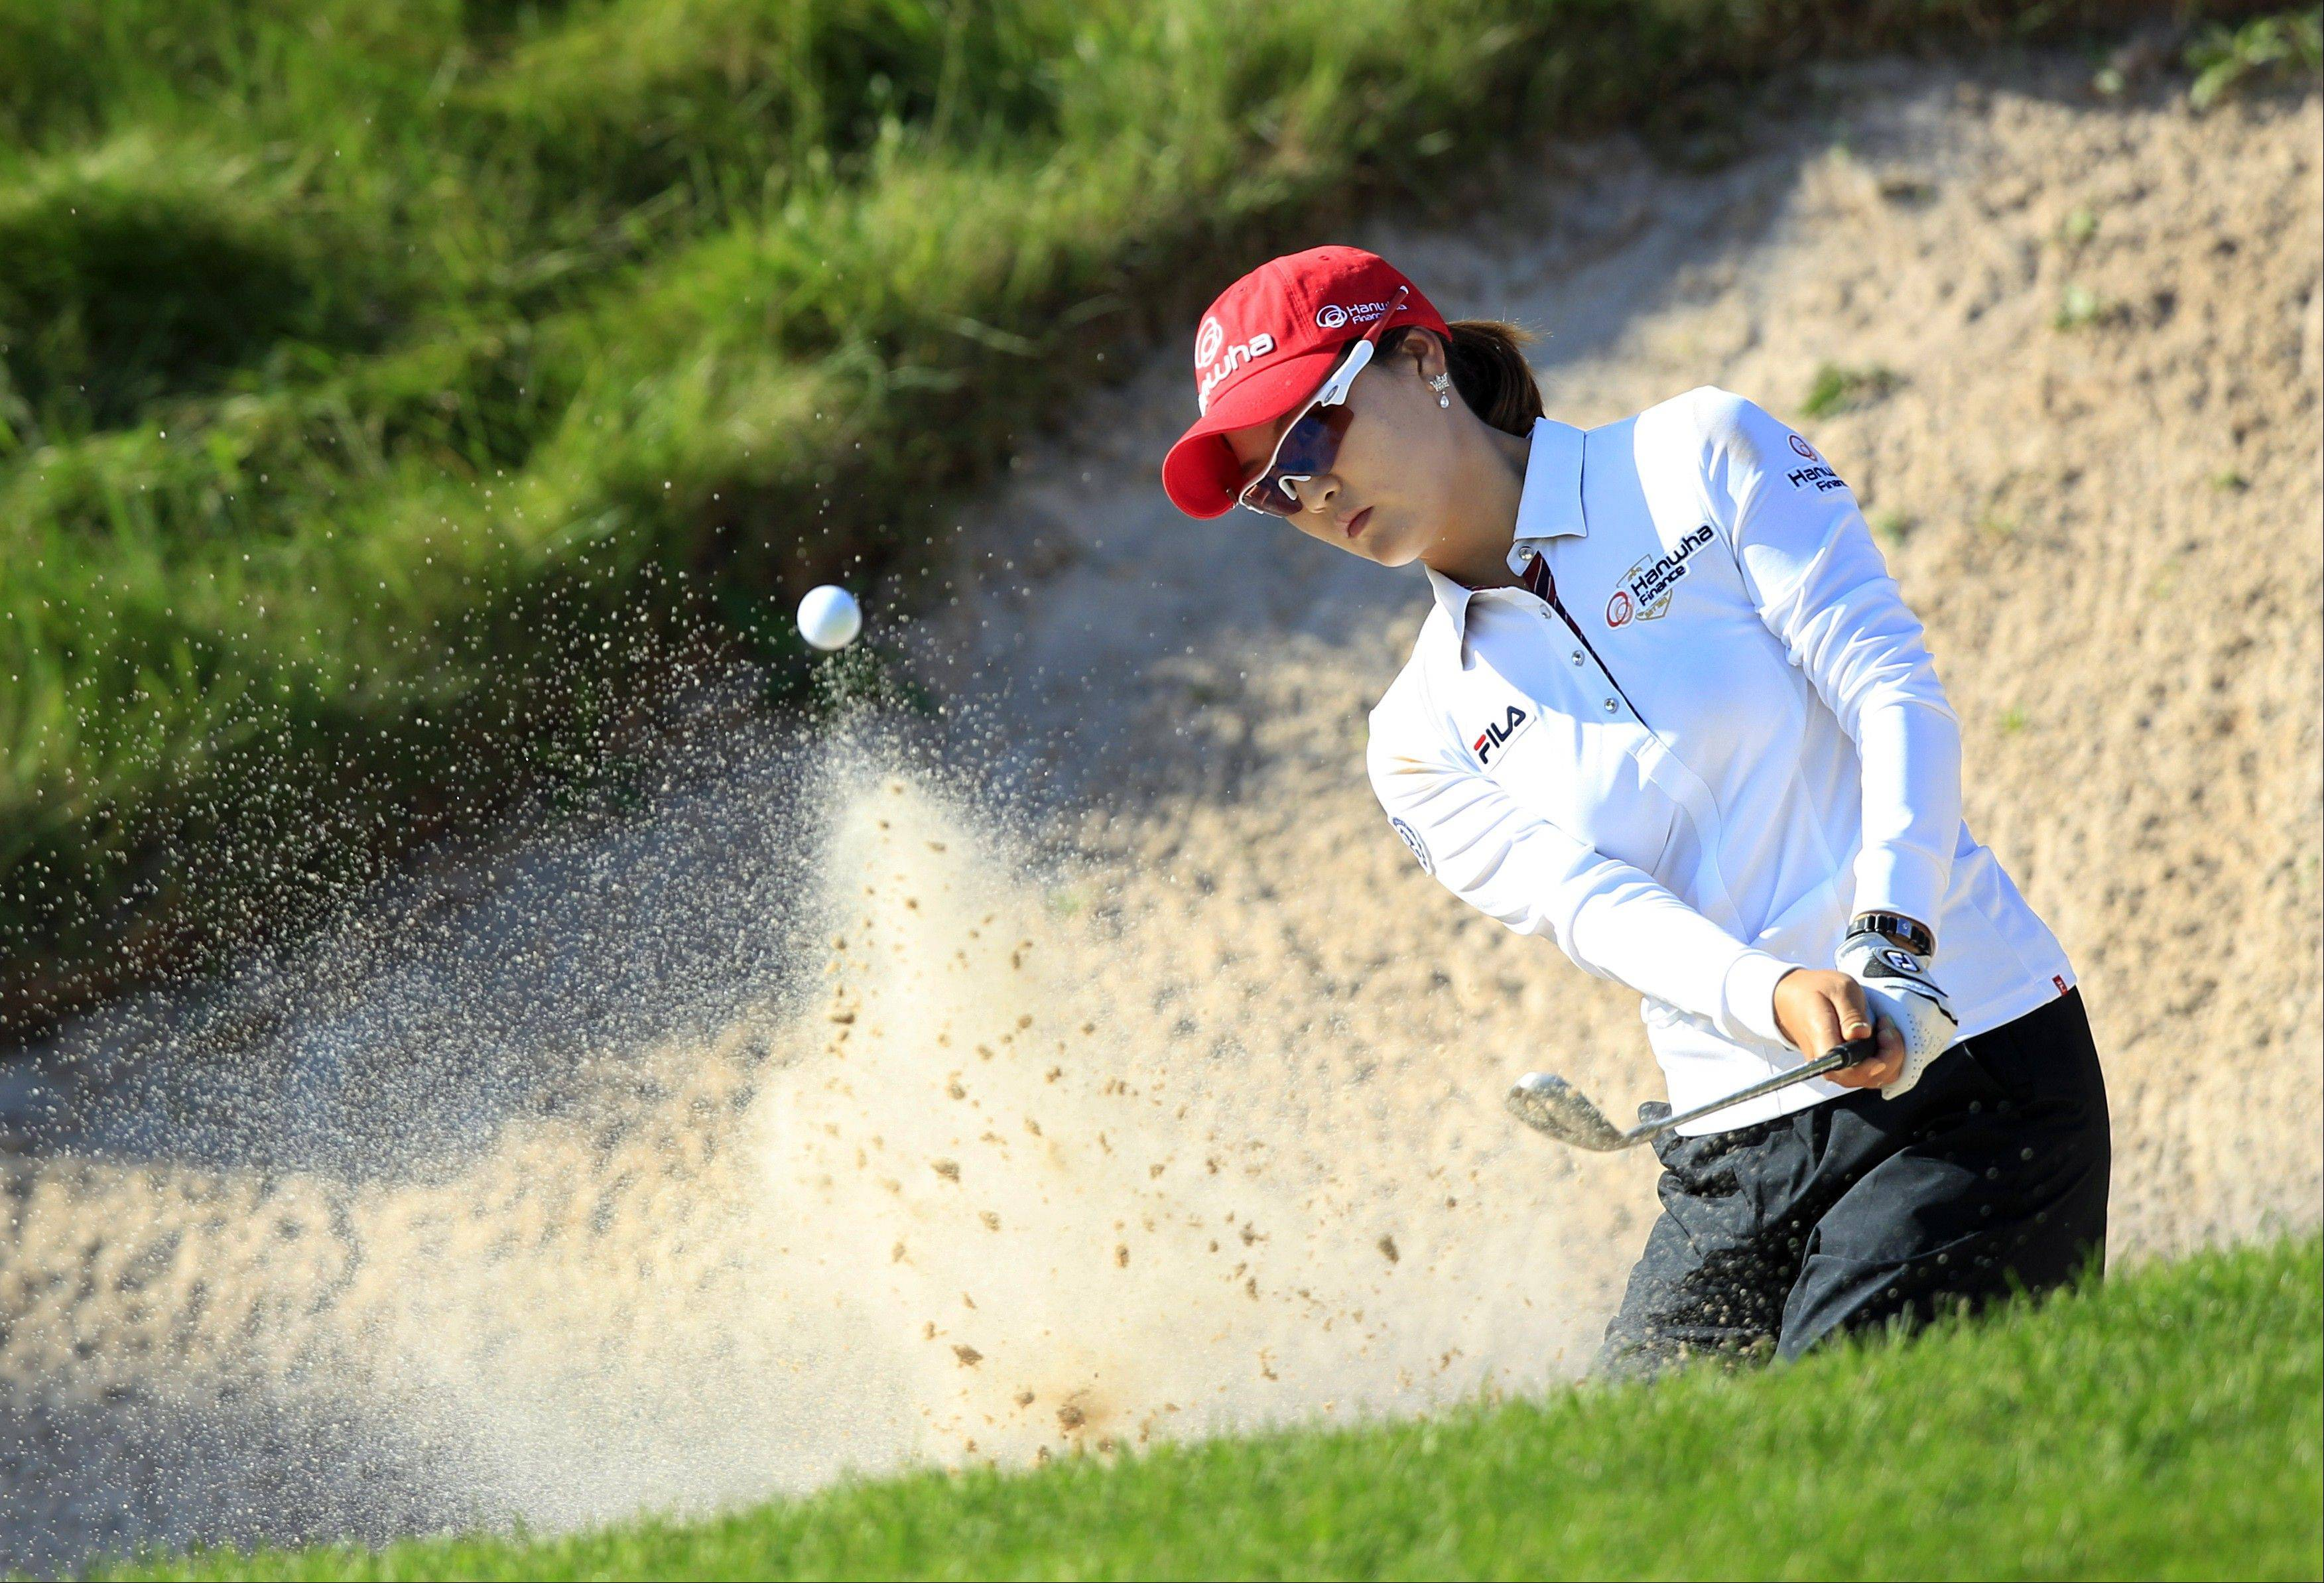 So Yeon Ryu of South Korea is the defending U.S. Women's Open champion, and her defense begins Thursday at Blackwolf Run in Kohler, Wis.